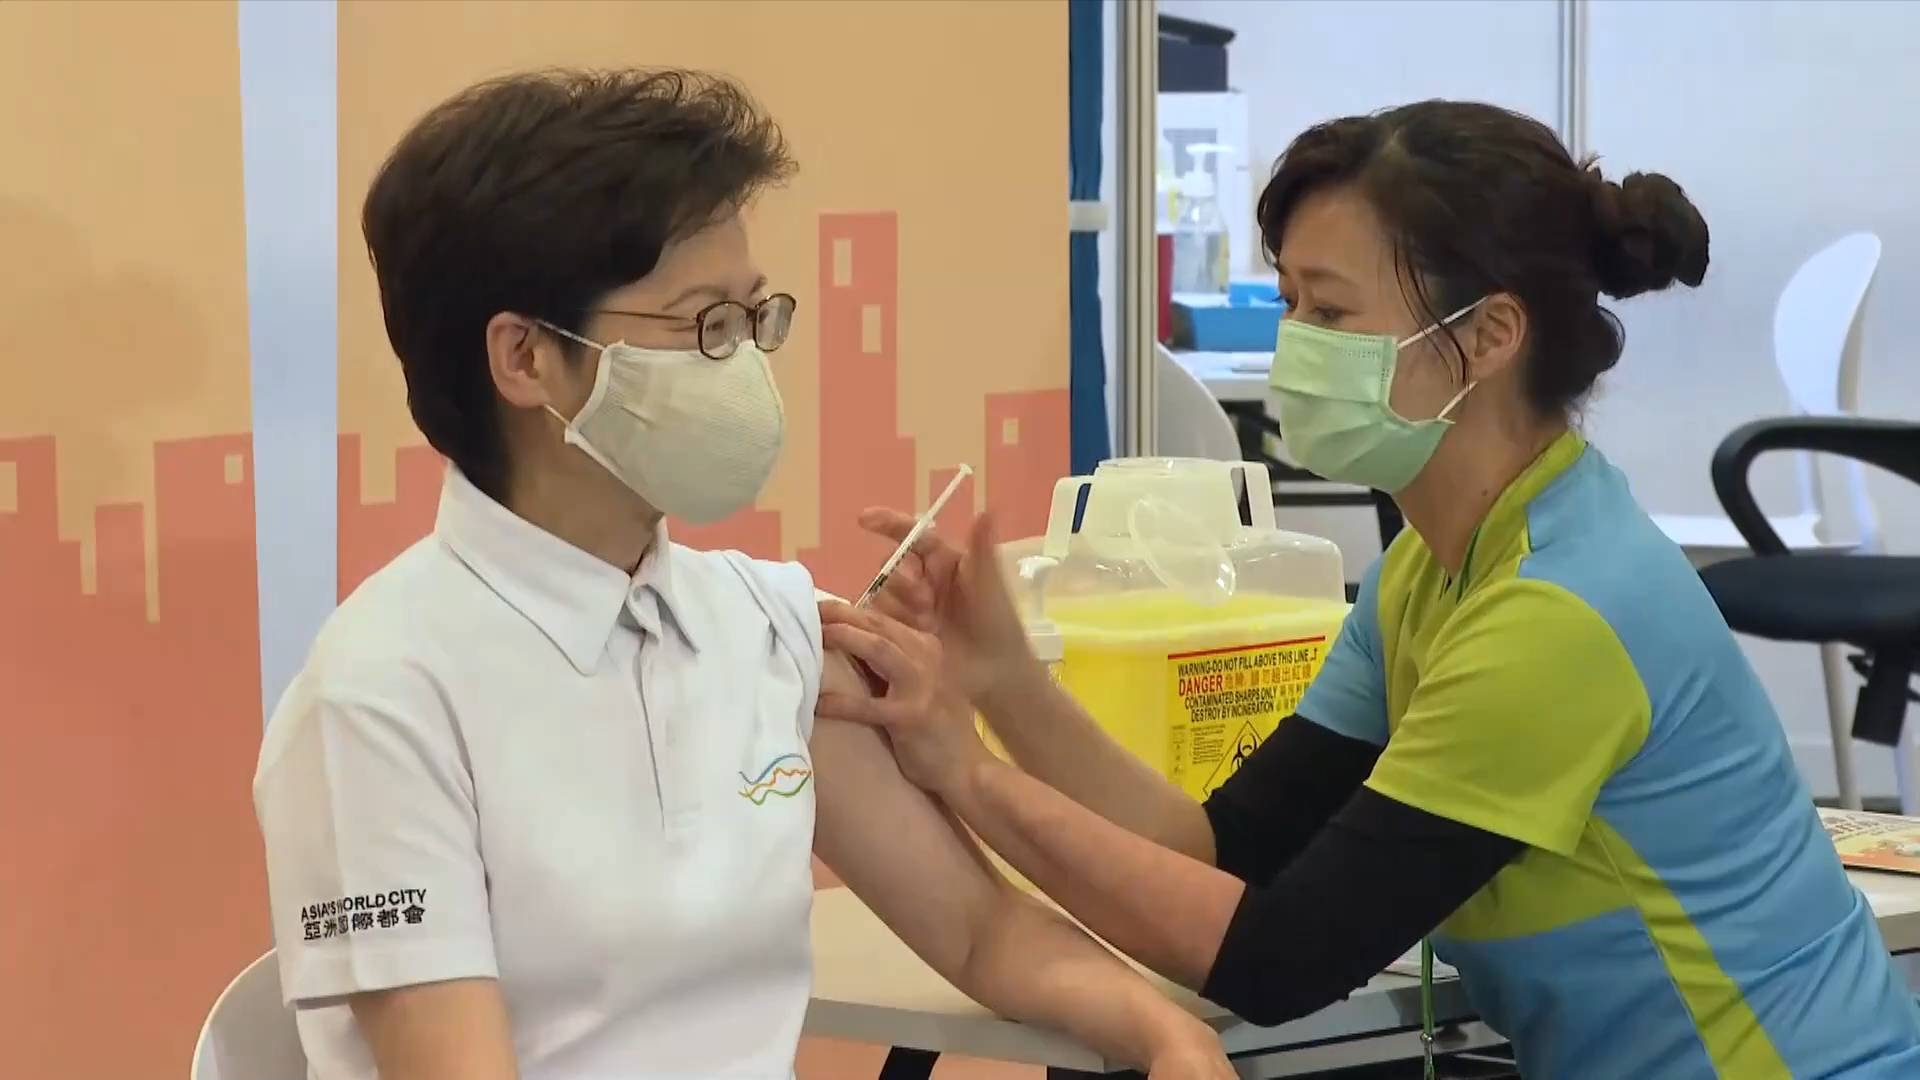 GLOBALink | HKSAR chief executive, senior officials get vaccinated against COVID-19